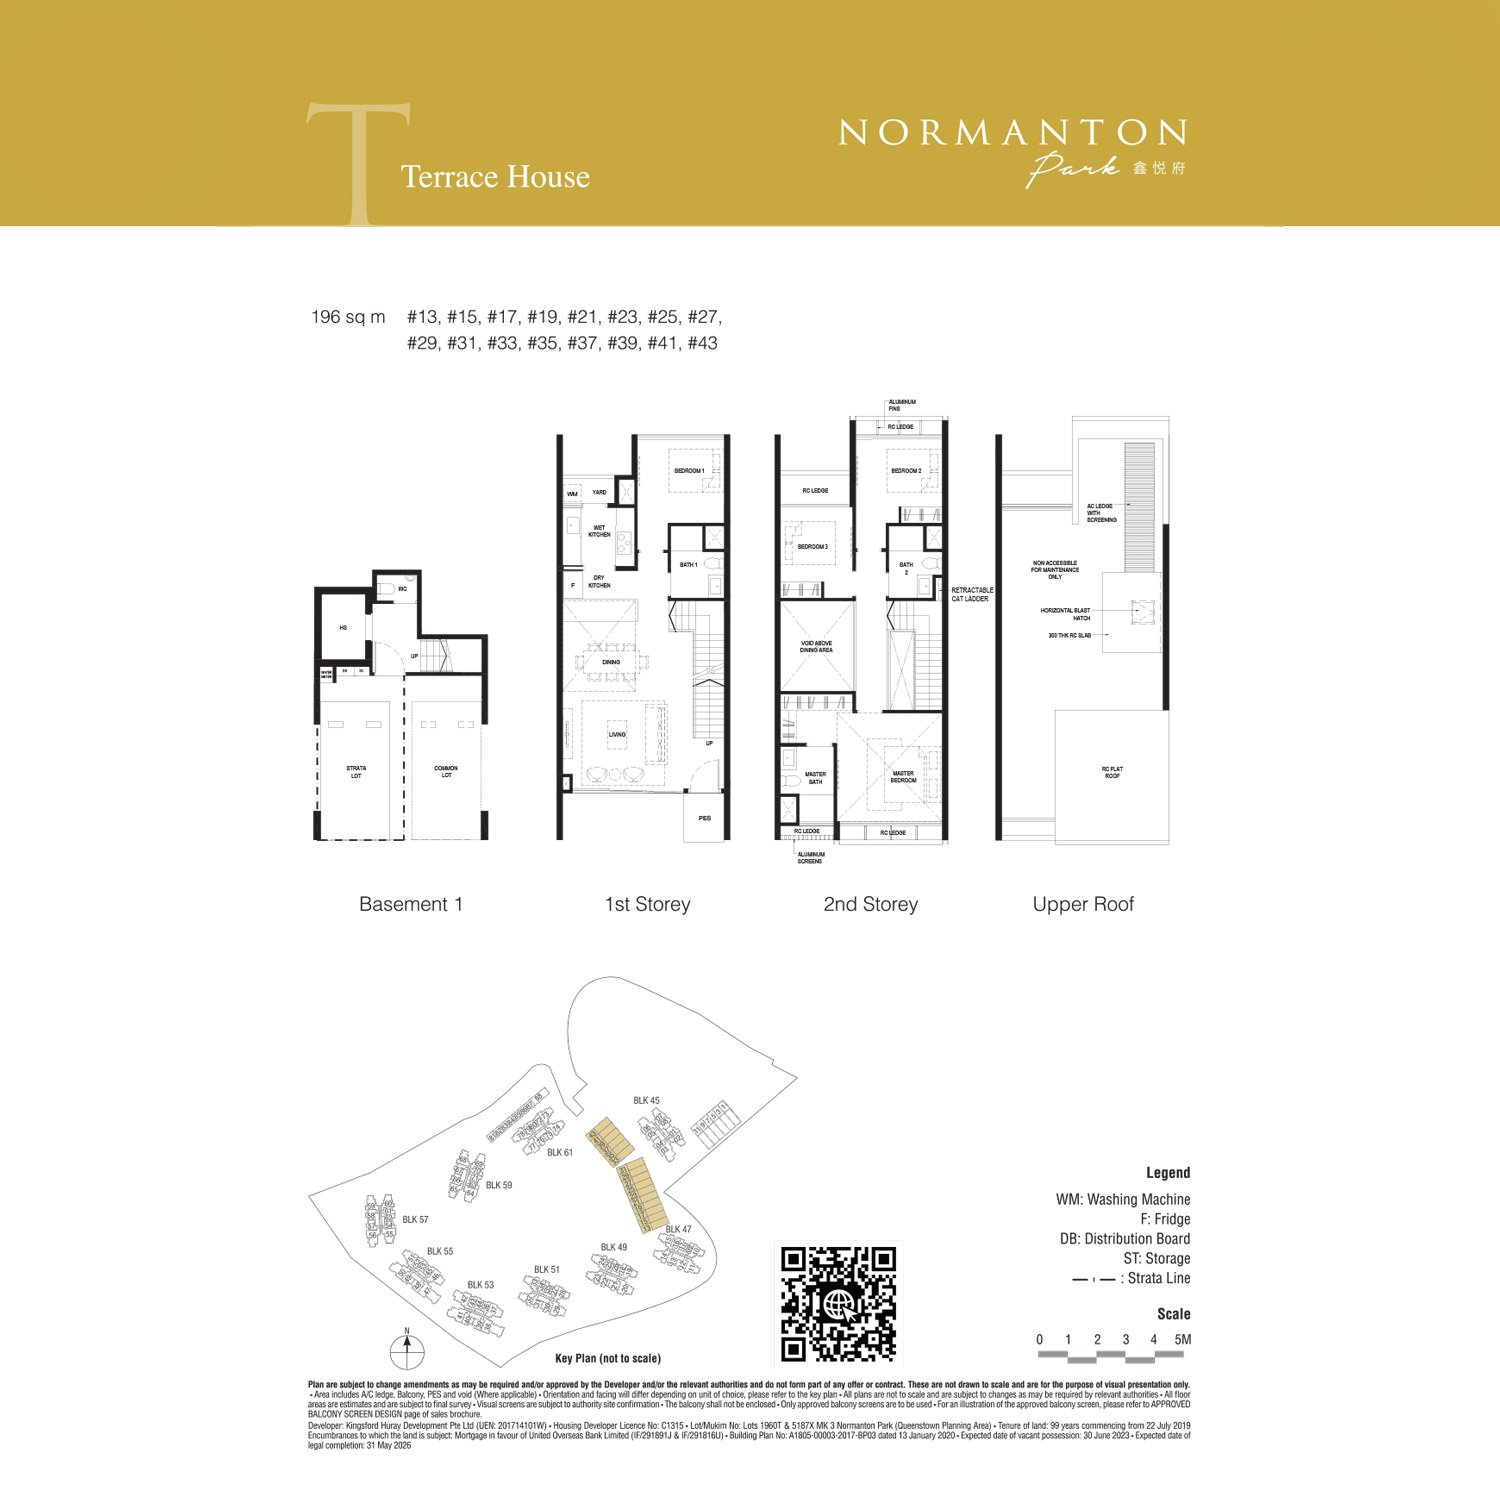 Strata Terrace Houses unit 13 to 43